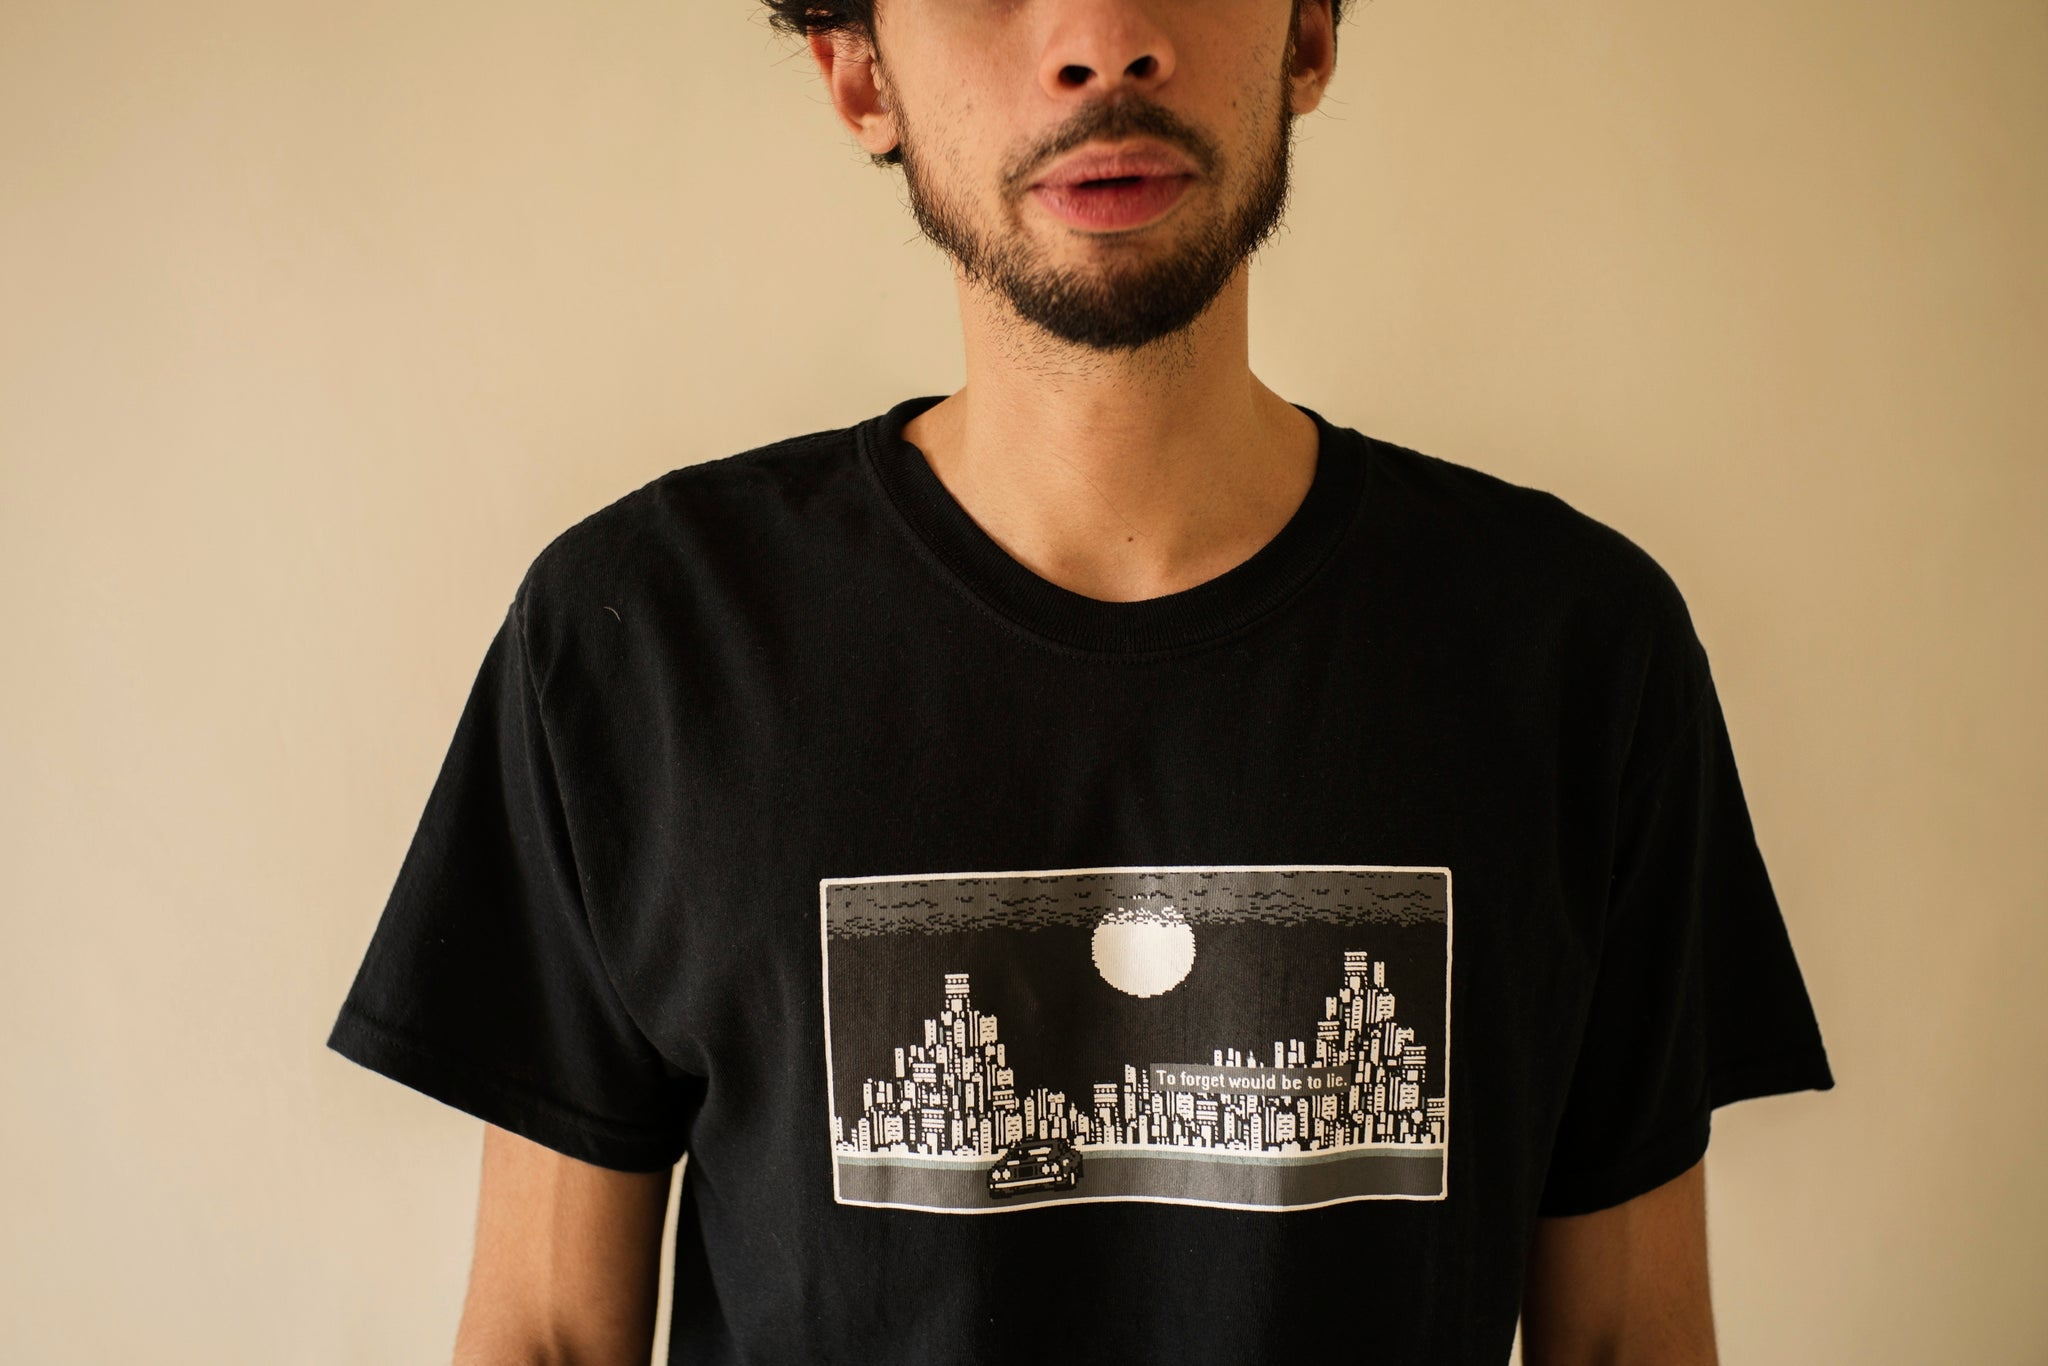 8-bitfiction x The Artisan - Tee